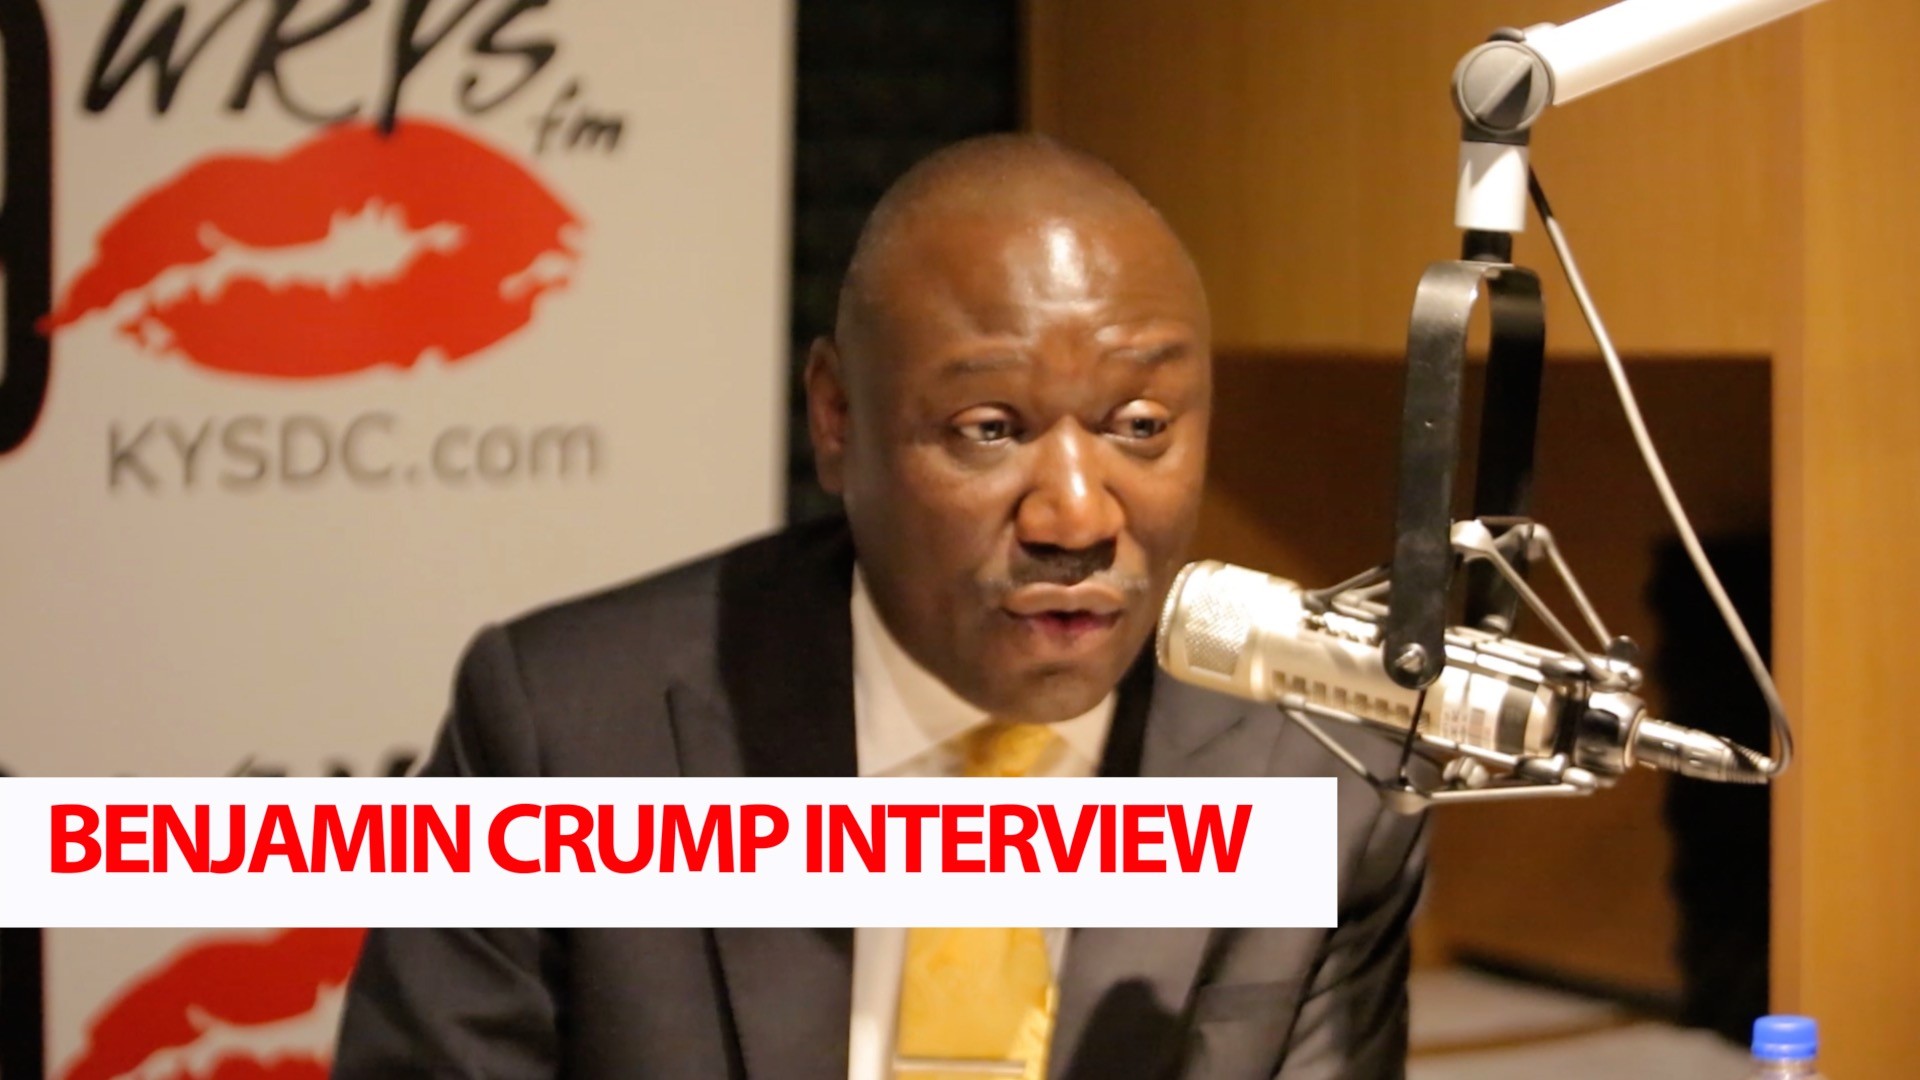 Benjamin Crump Graphic